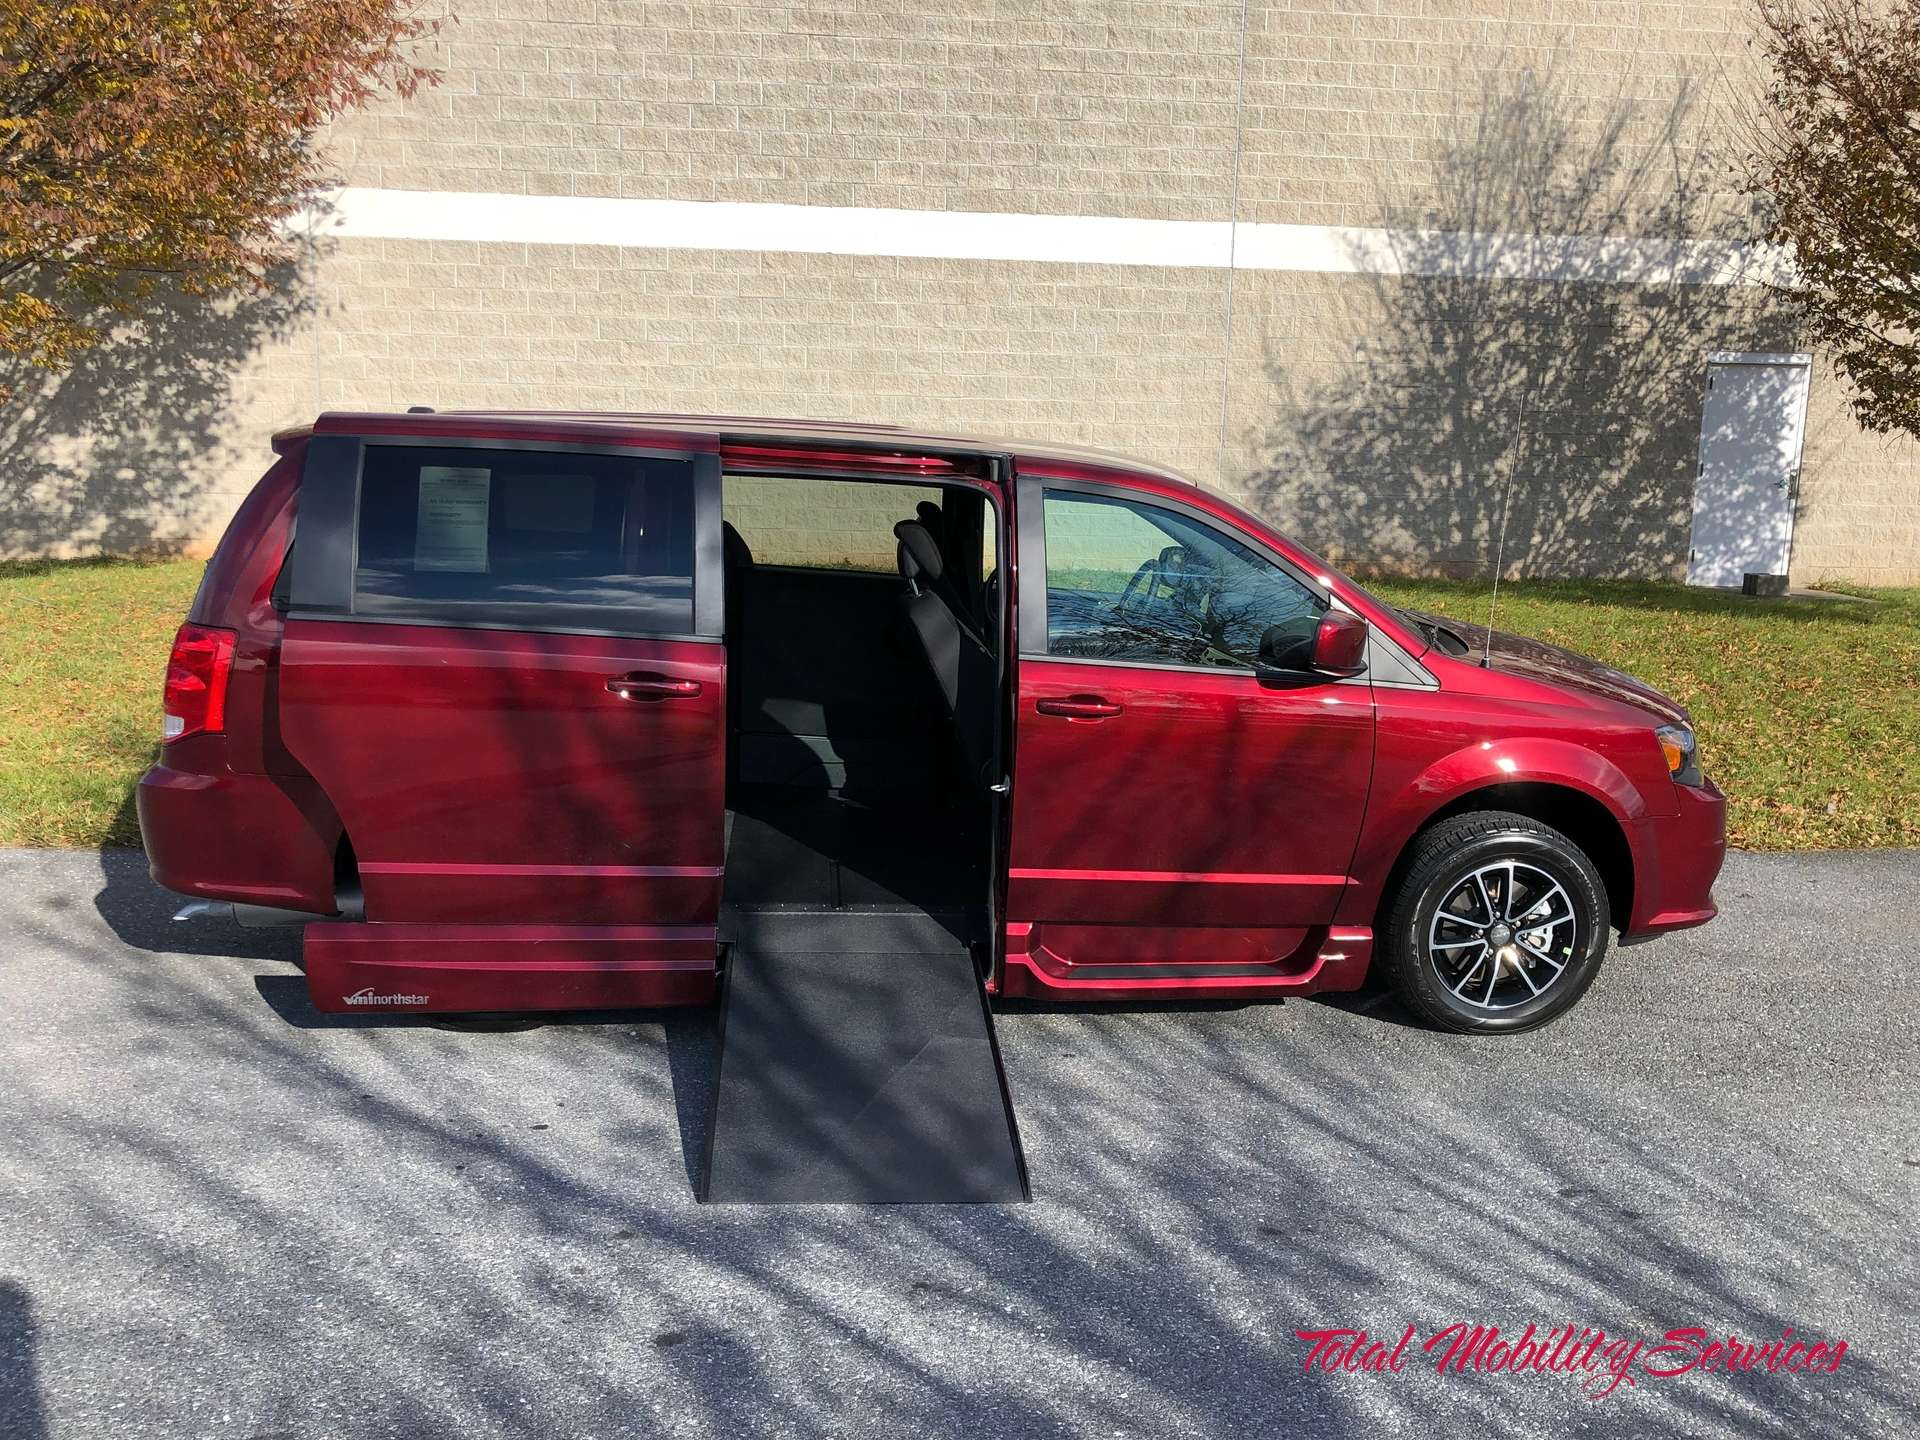 2019 Dodge Grand Caravan | Conversion: VMI Dodge Northstar